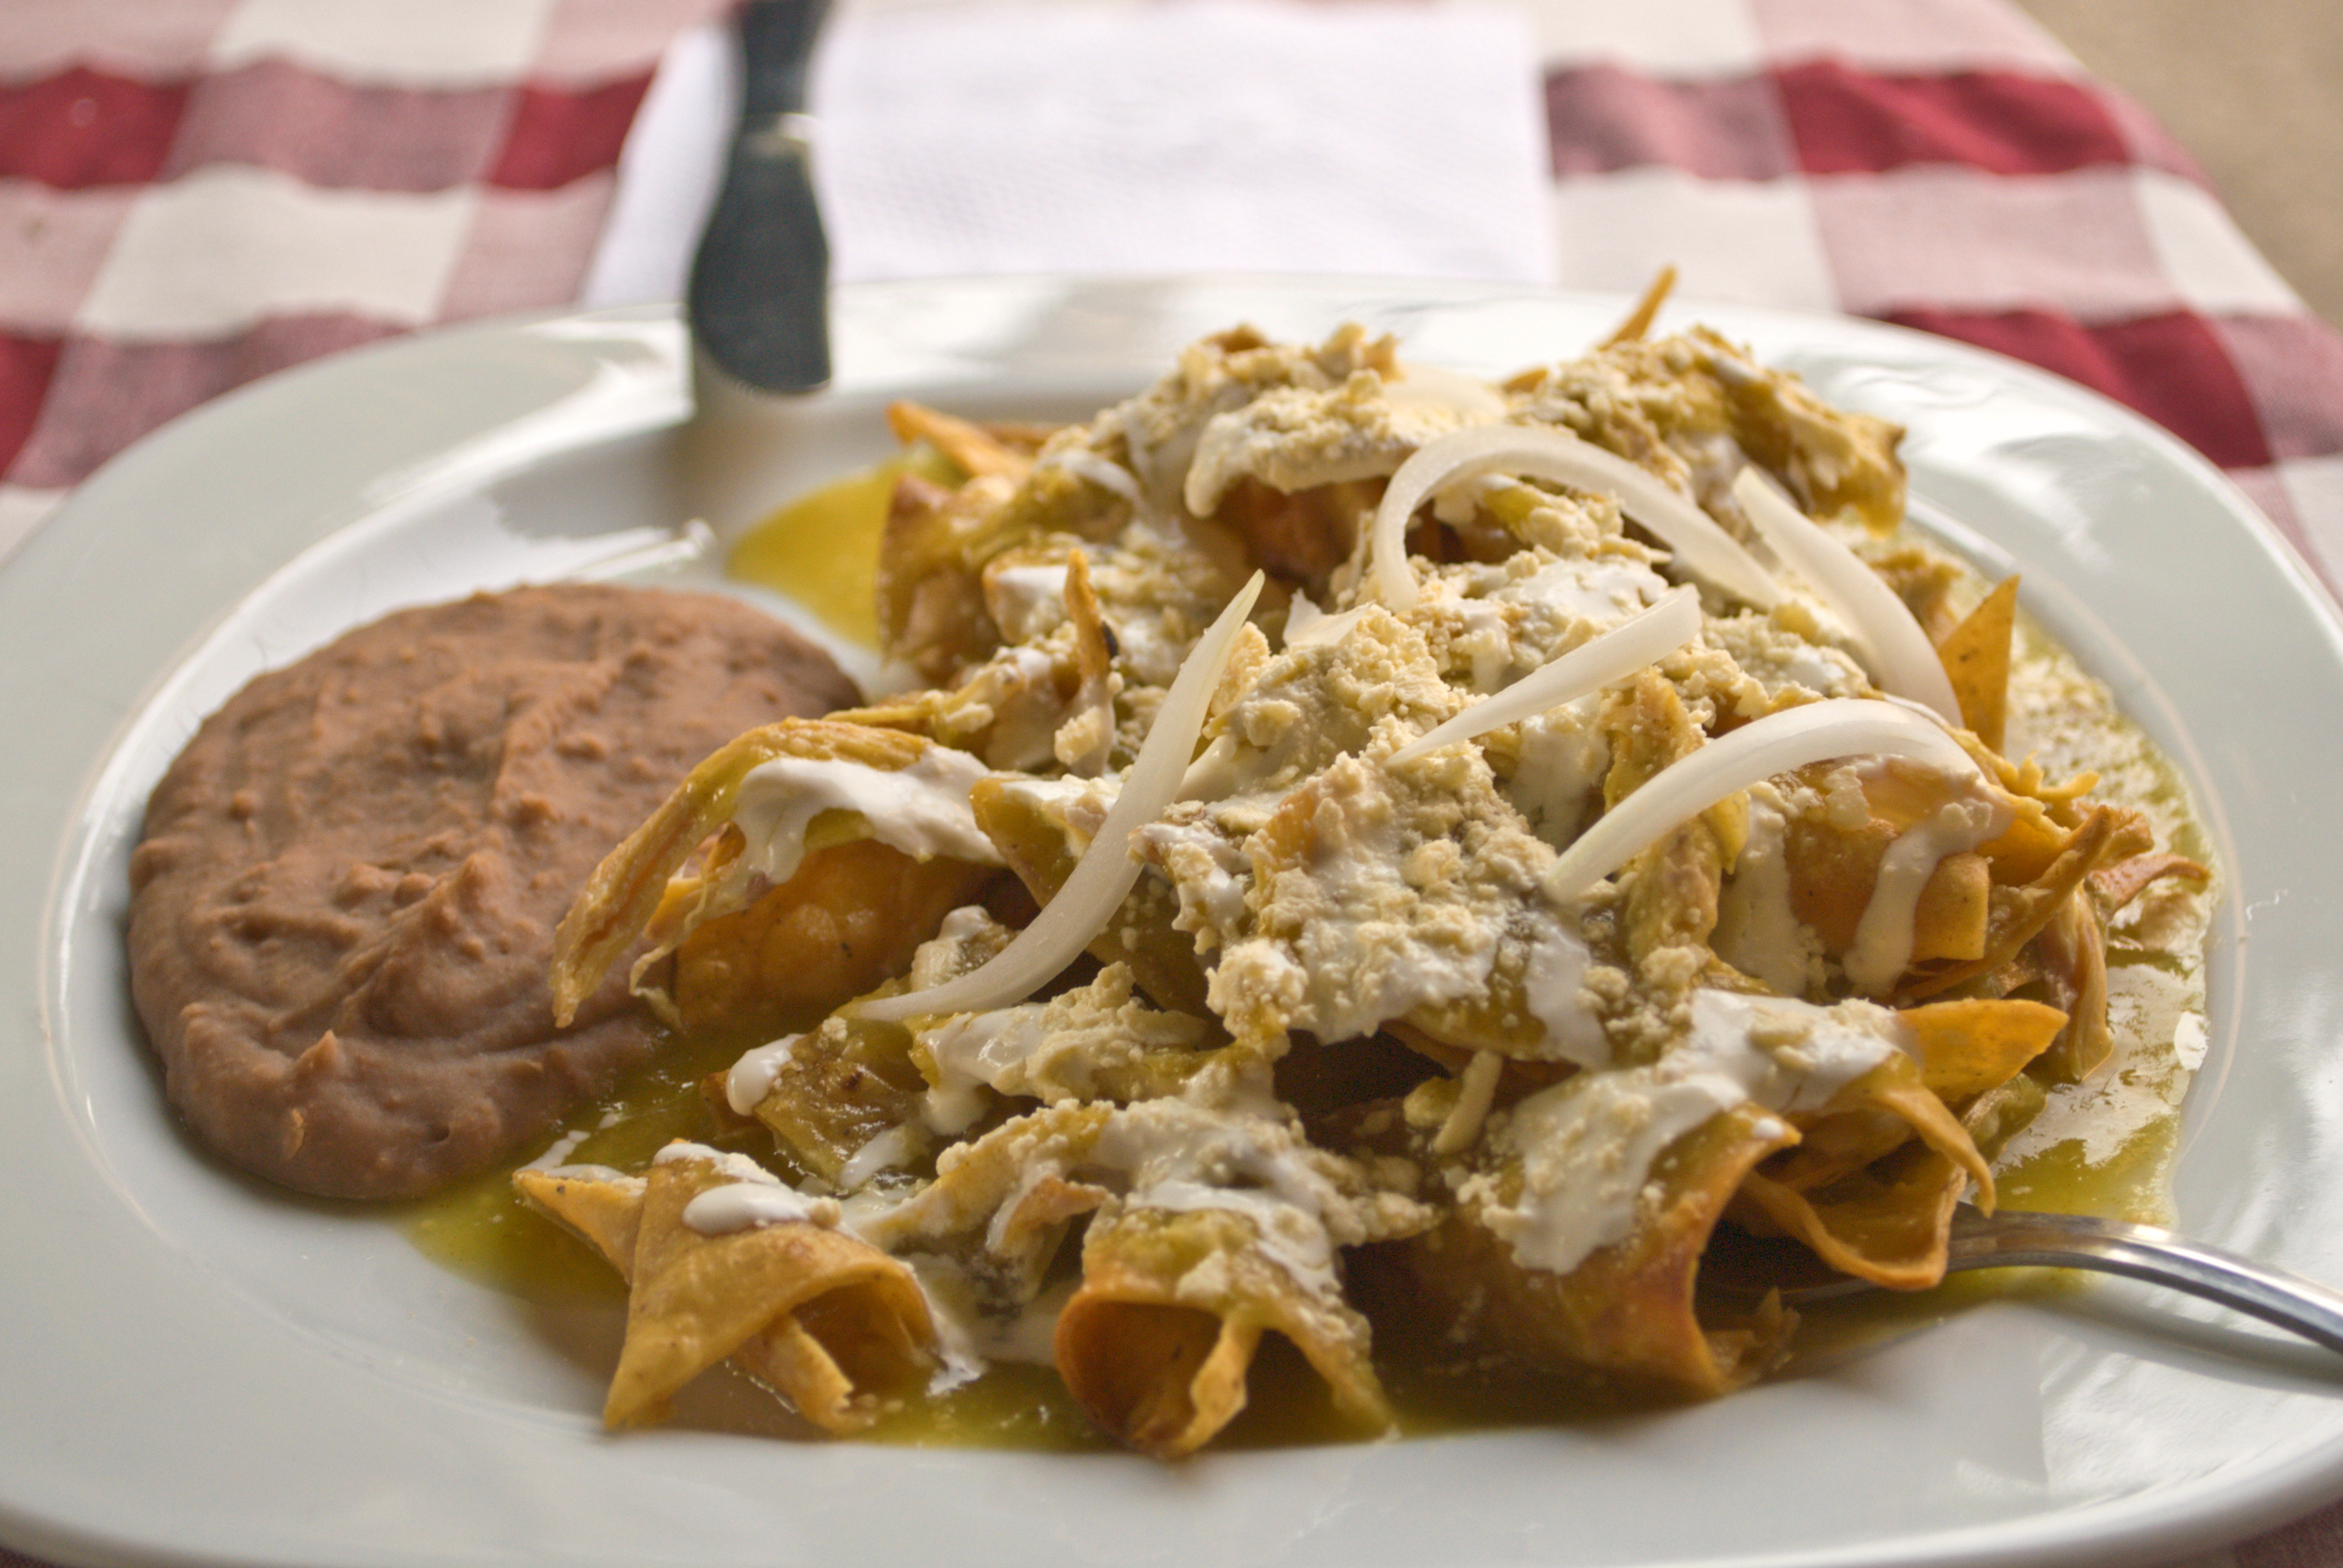 File:01 Chilaquiles verdes con frijoles chinos.jpg ...